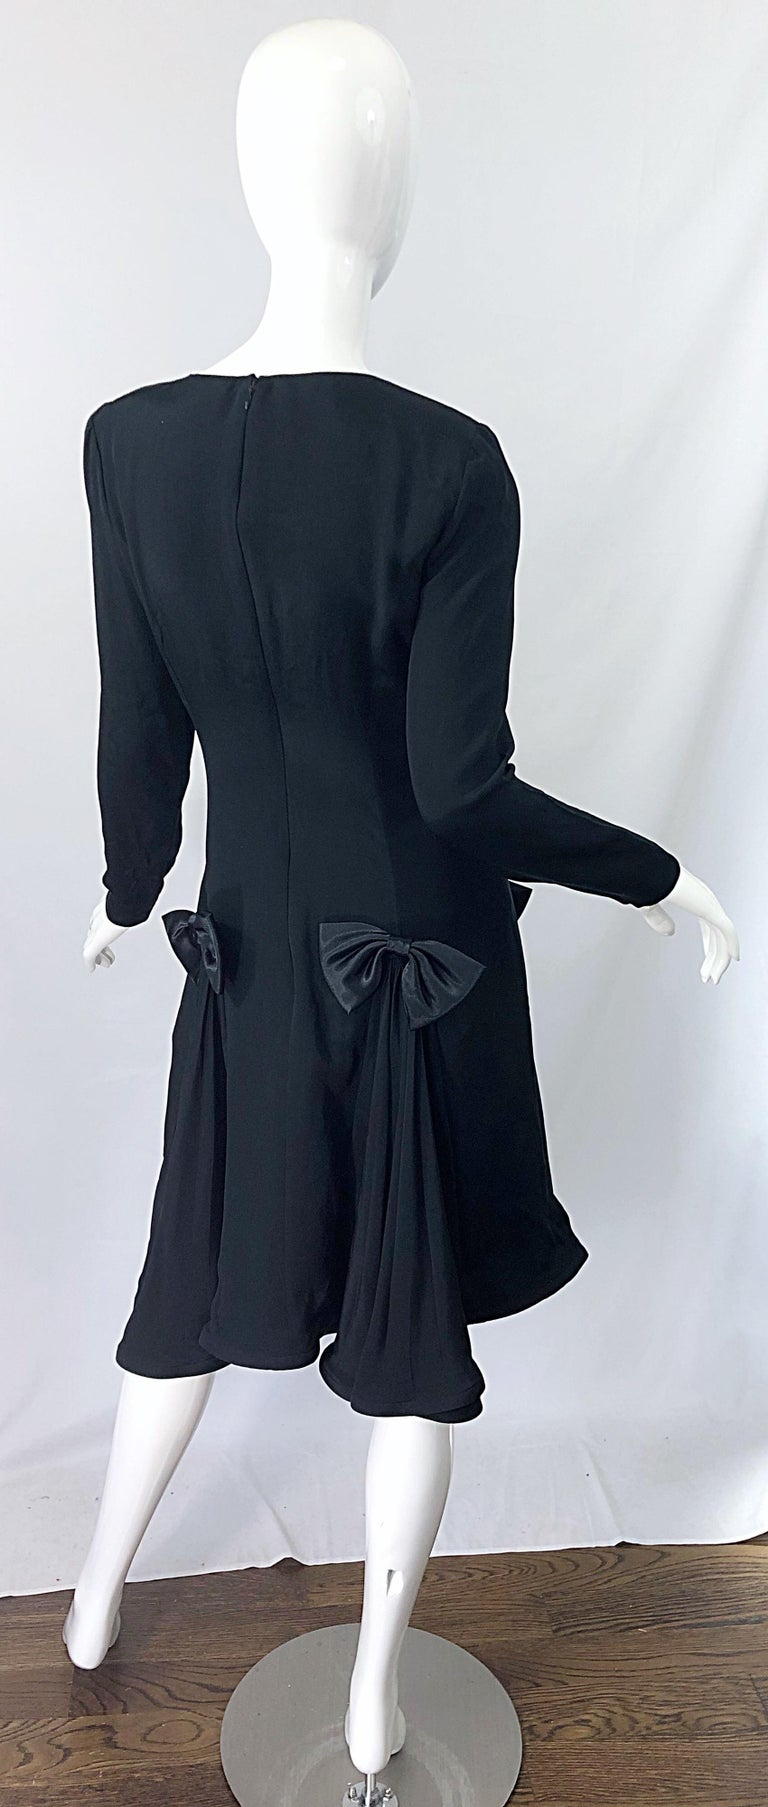 Vintage Pierre Cardin Size 8 Black Silk 1990s Long Sleeve 90s Bow Dress In Excellent Condition For Sale In Chicago, IL